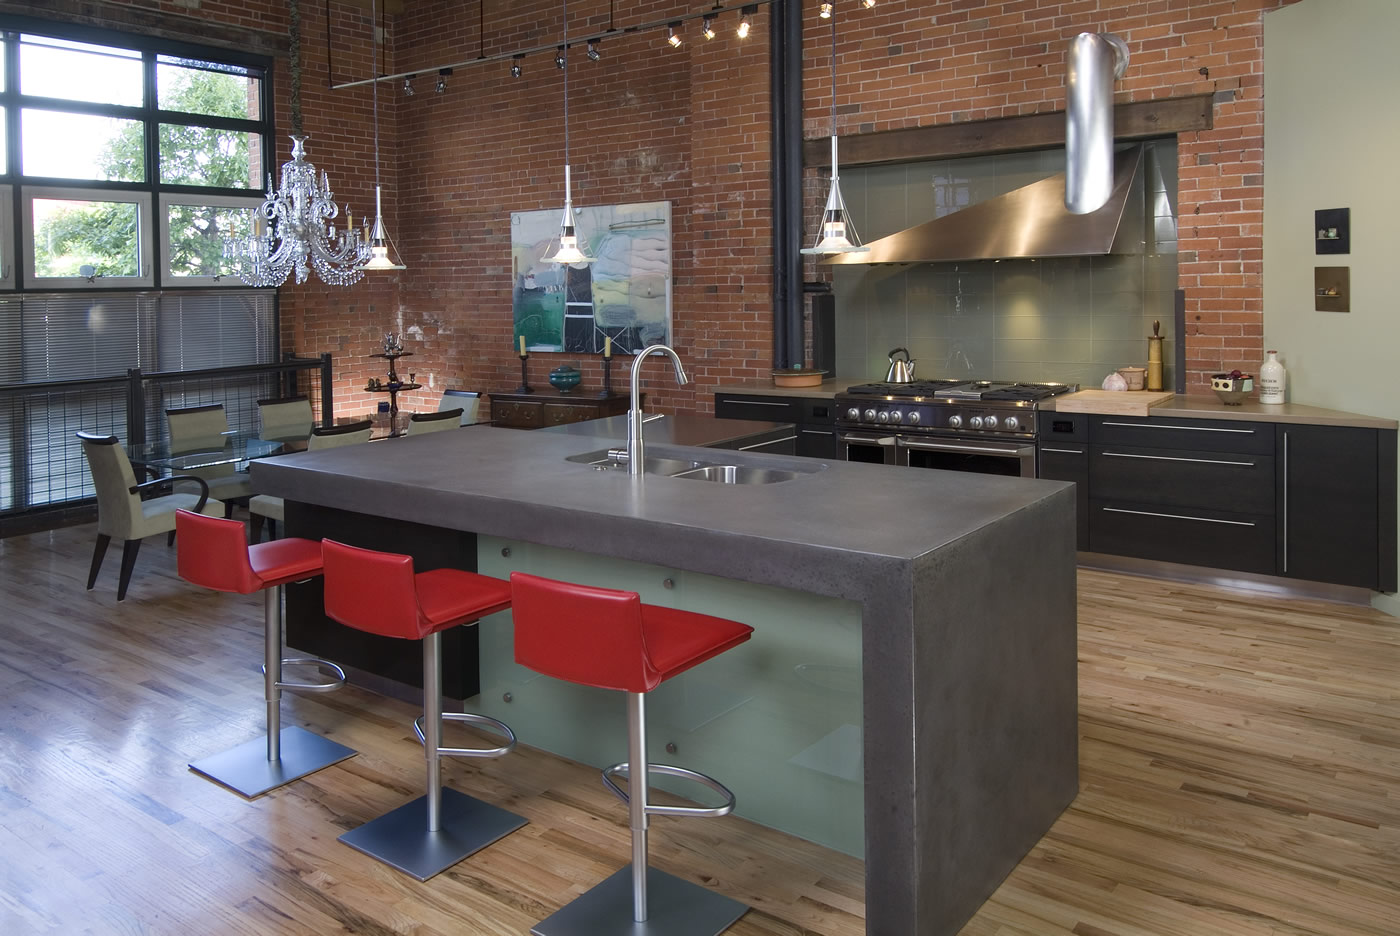 loft-kitchen-and-kitchen-design-tips-and-tricks-with-top-quality-kitchen-design-to-maximize-the-usability-of-your-home-13